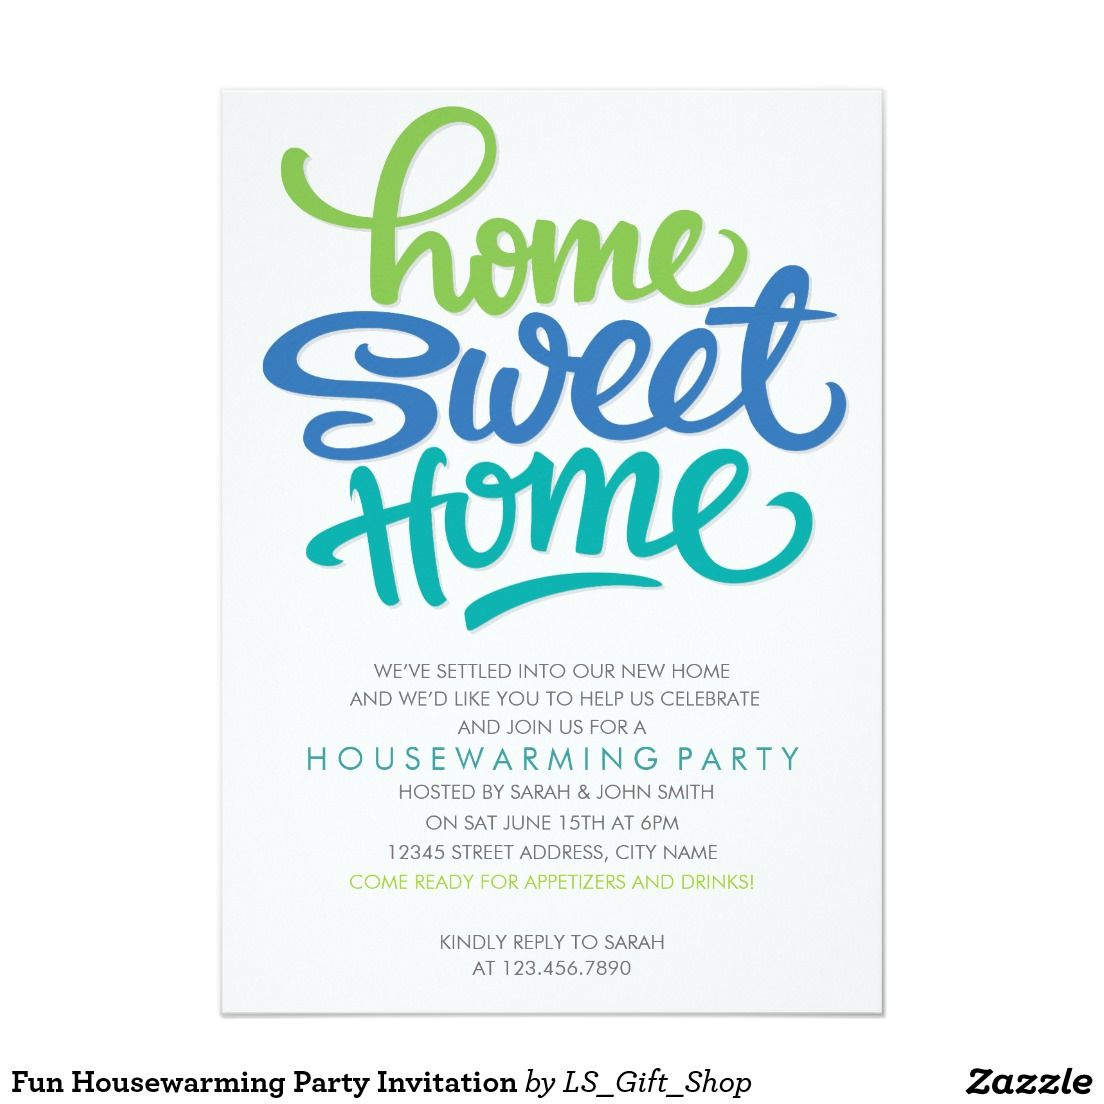 Fun Housewarming Party Invitation  Housewarming Party Invitations